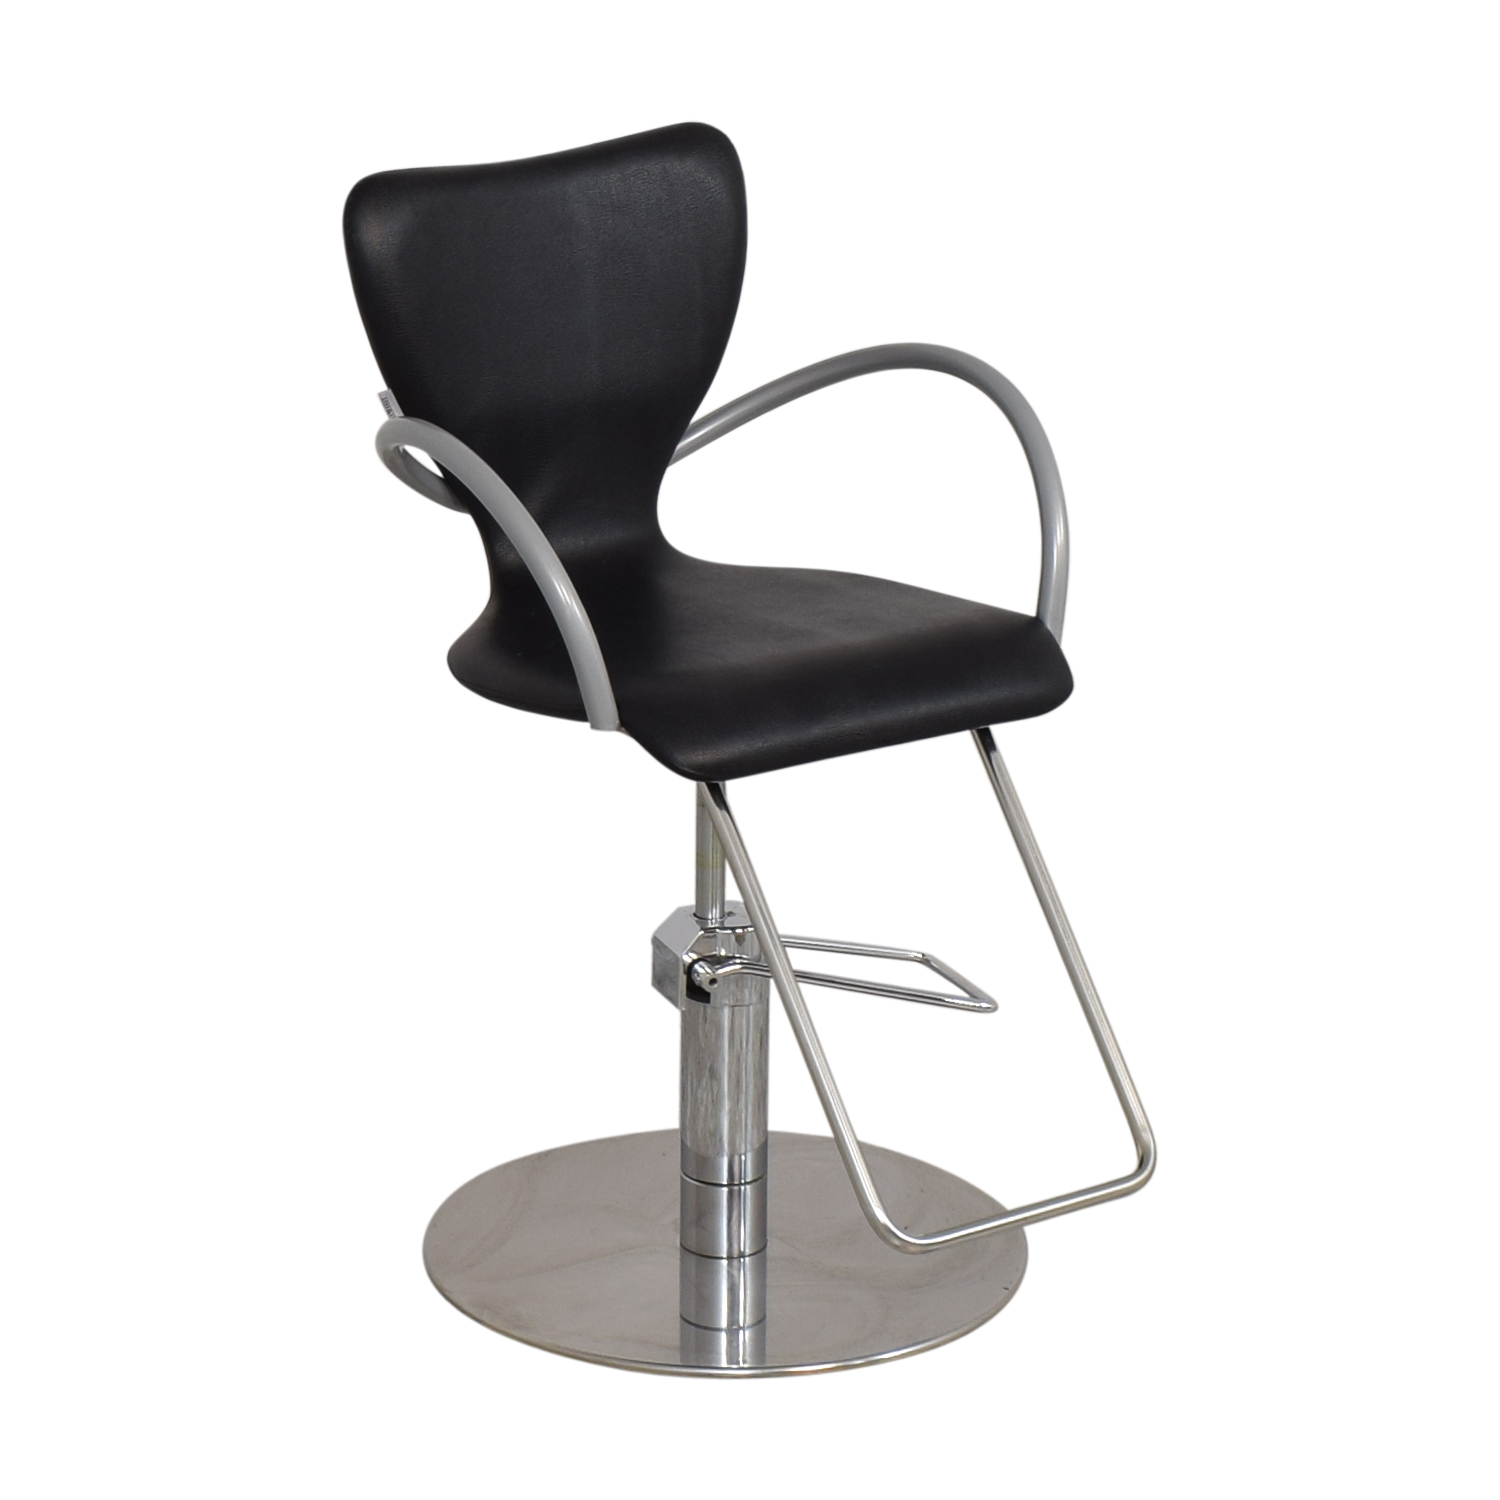 shop Gamma Bross Folda Parrot Styling Chair Gamma & Bross Stools